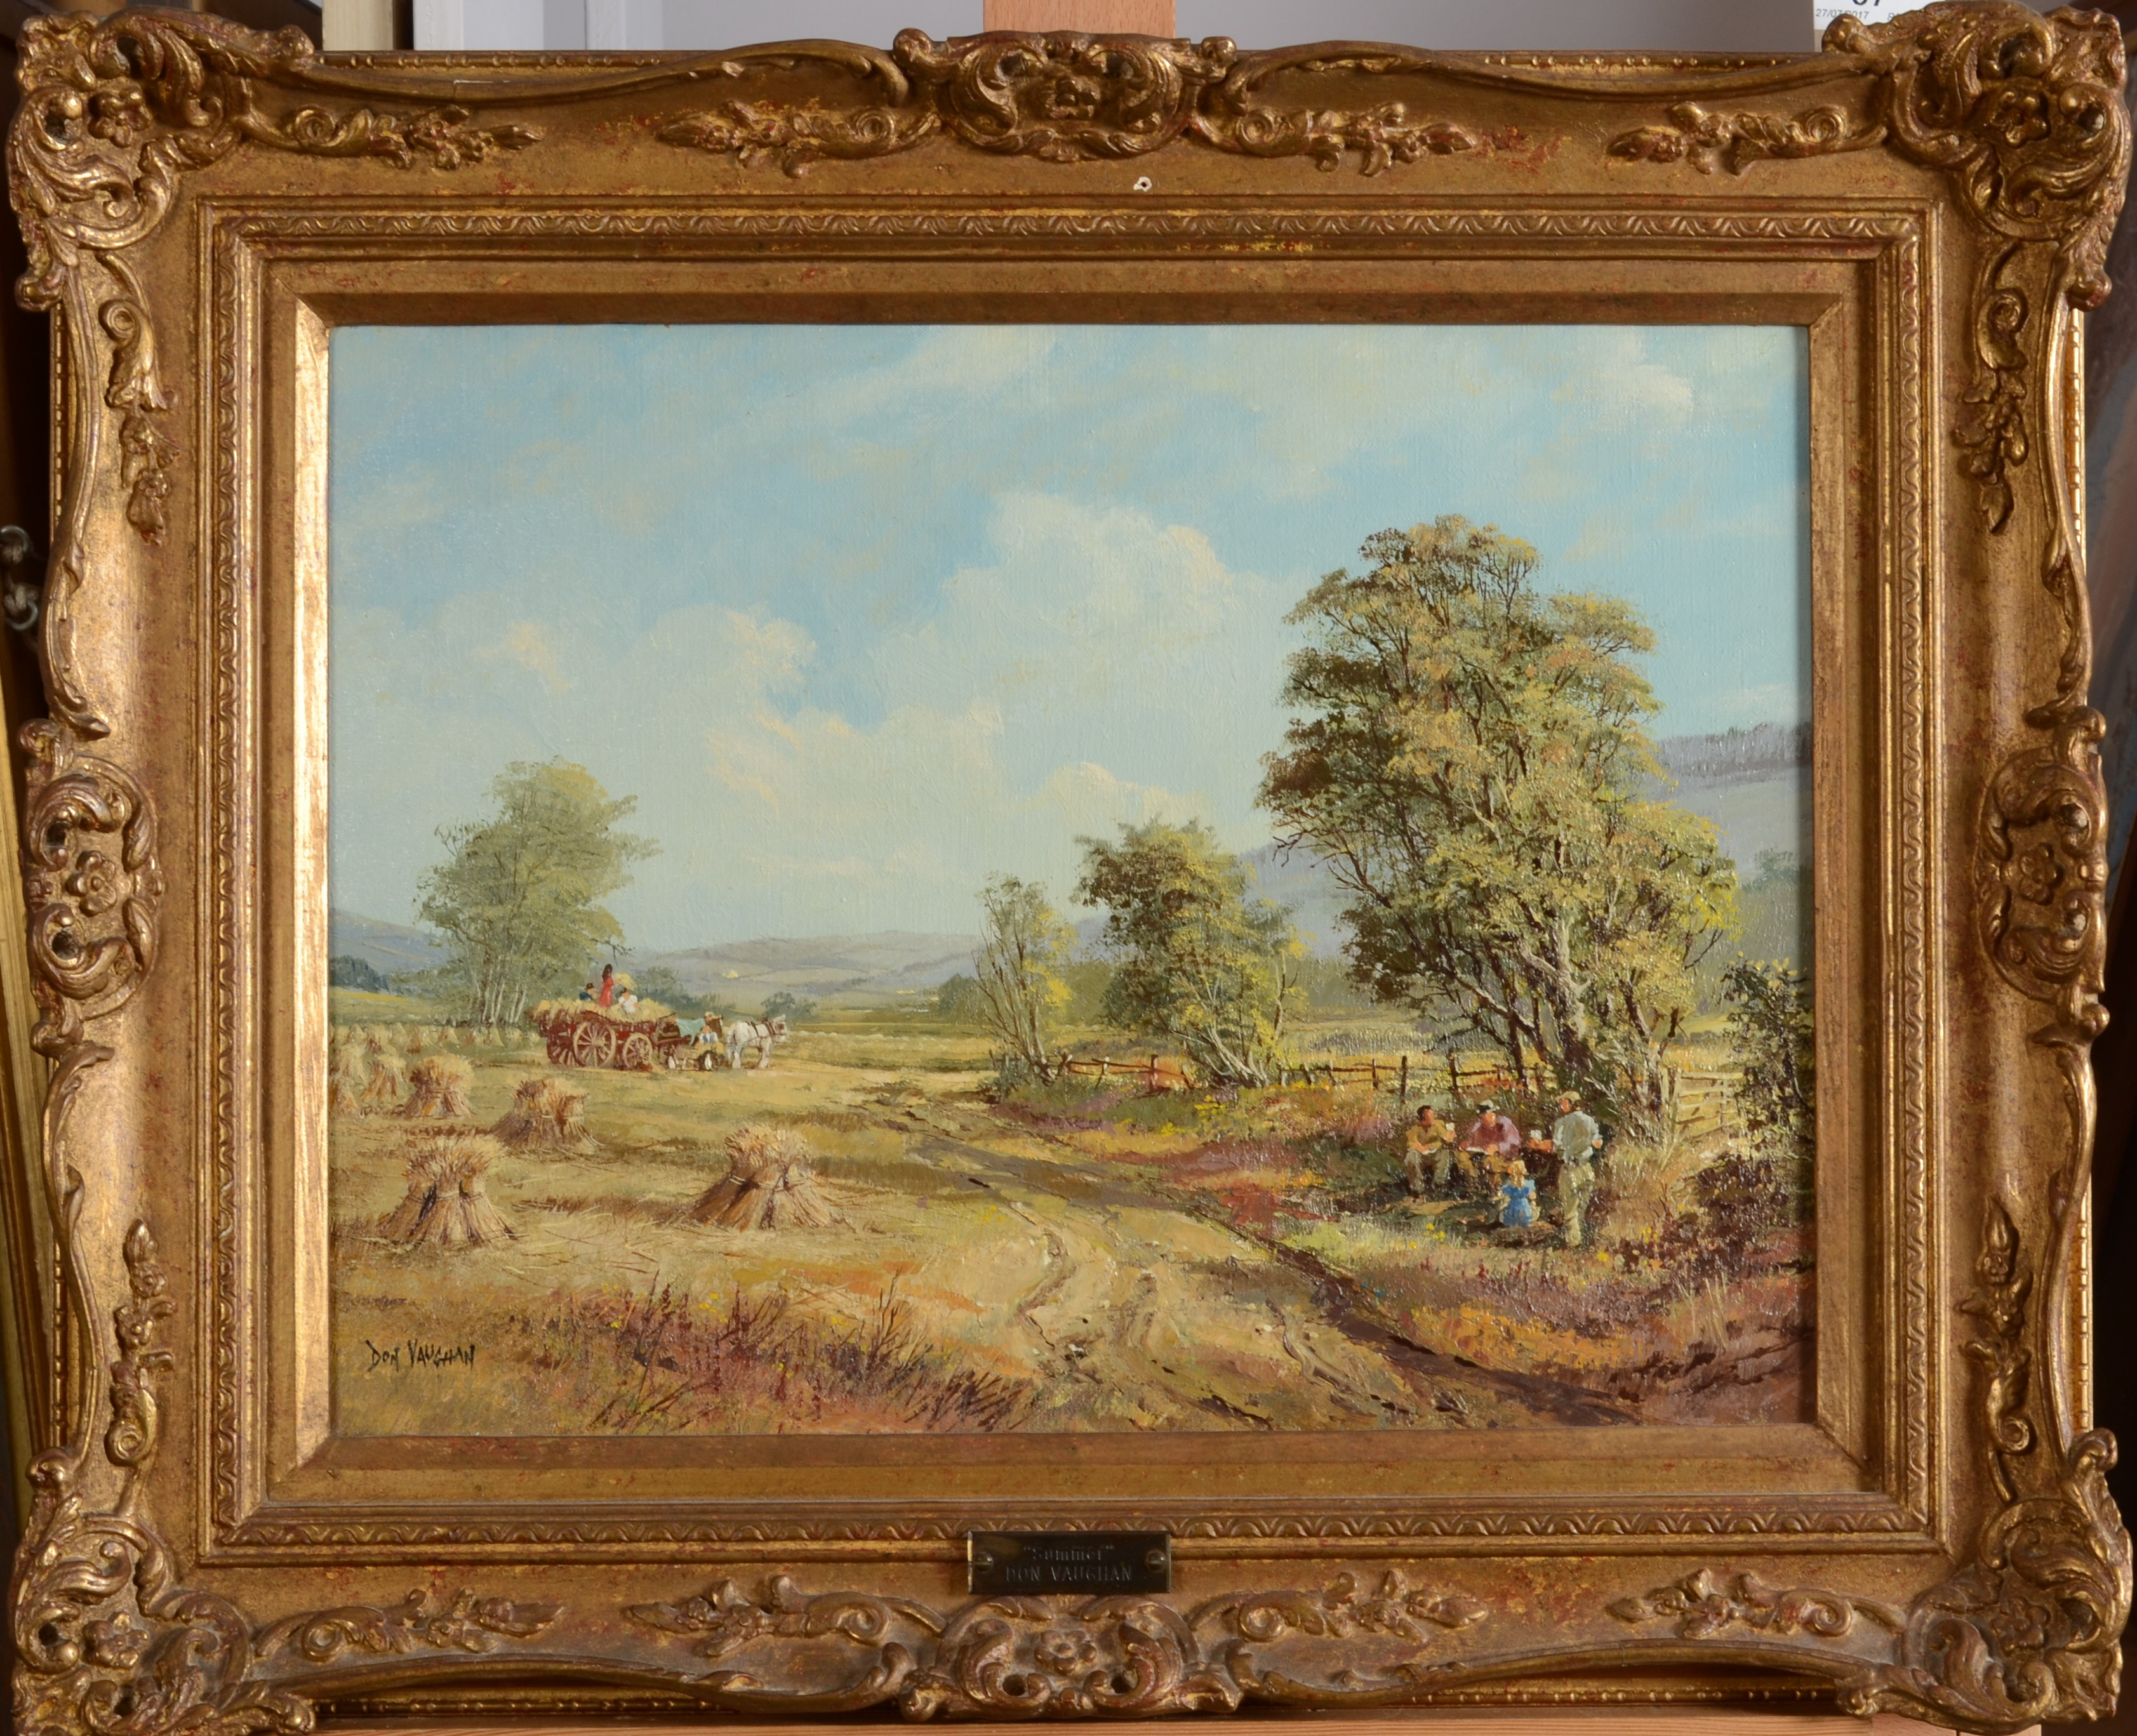 Lot 37 - DON VAUGHAN Summer Oil on canvas Signed 30 x 40 cm